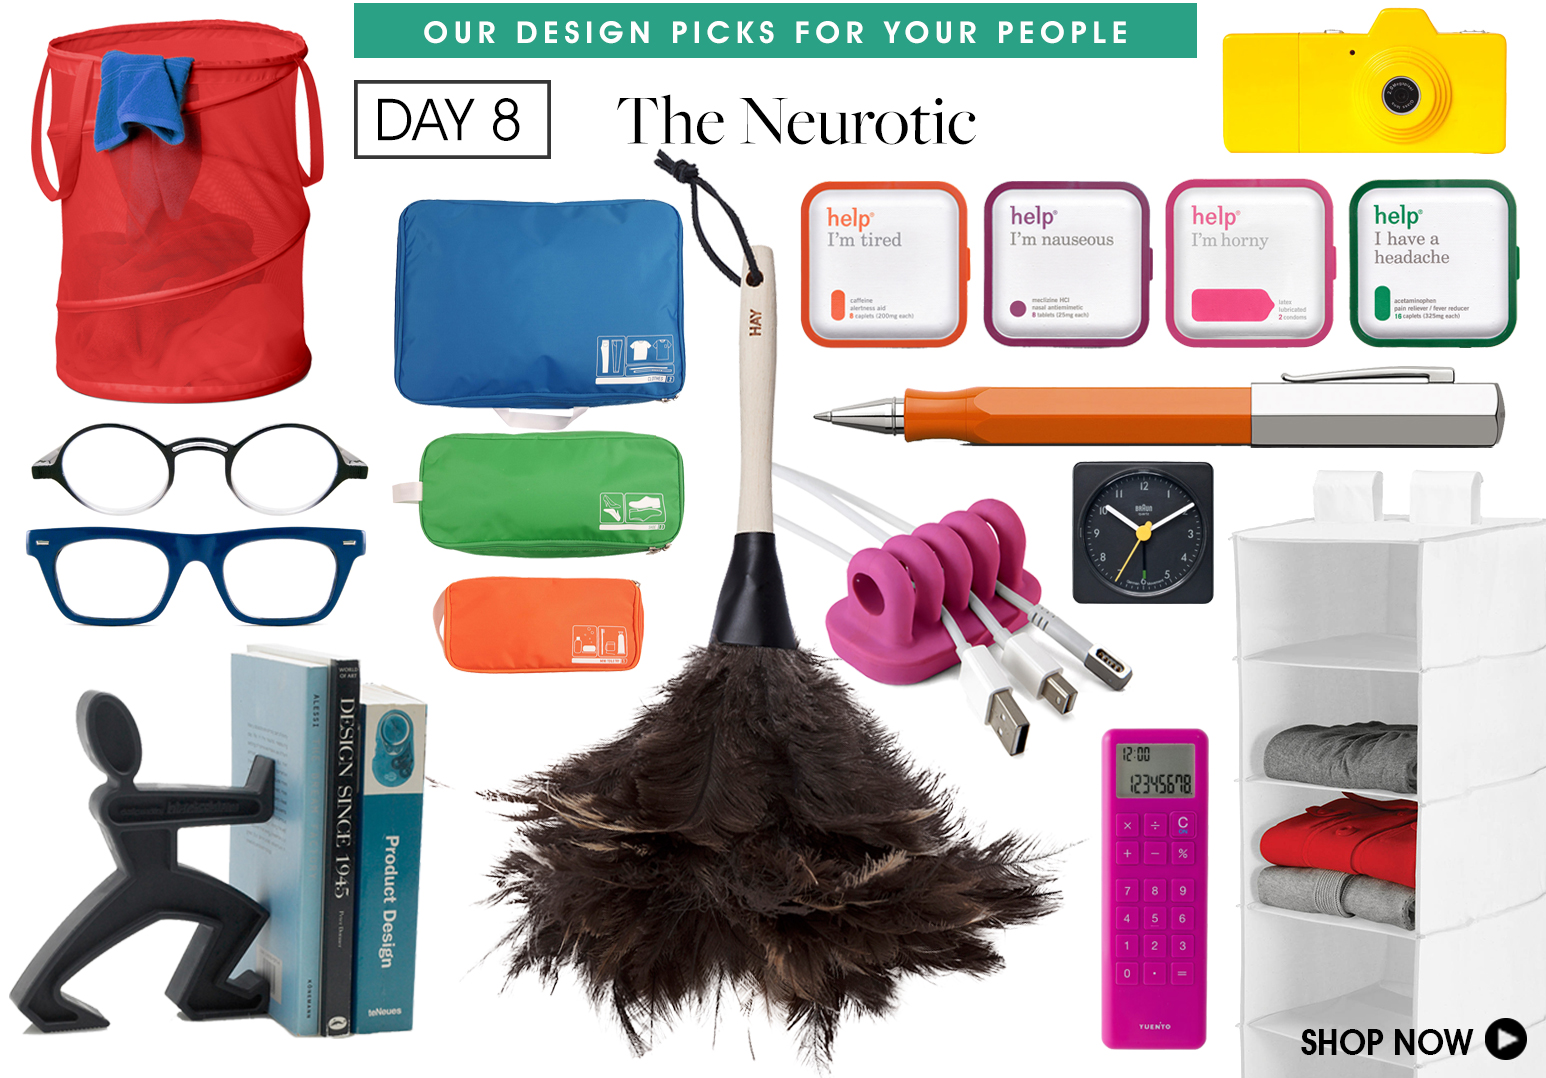 - 12 Days of Gifting - Day 8 The Neurotic